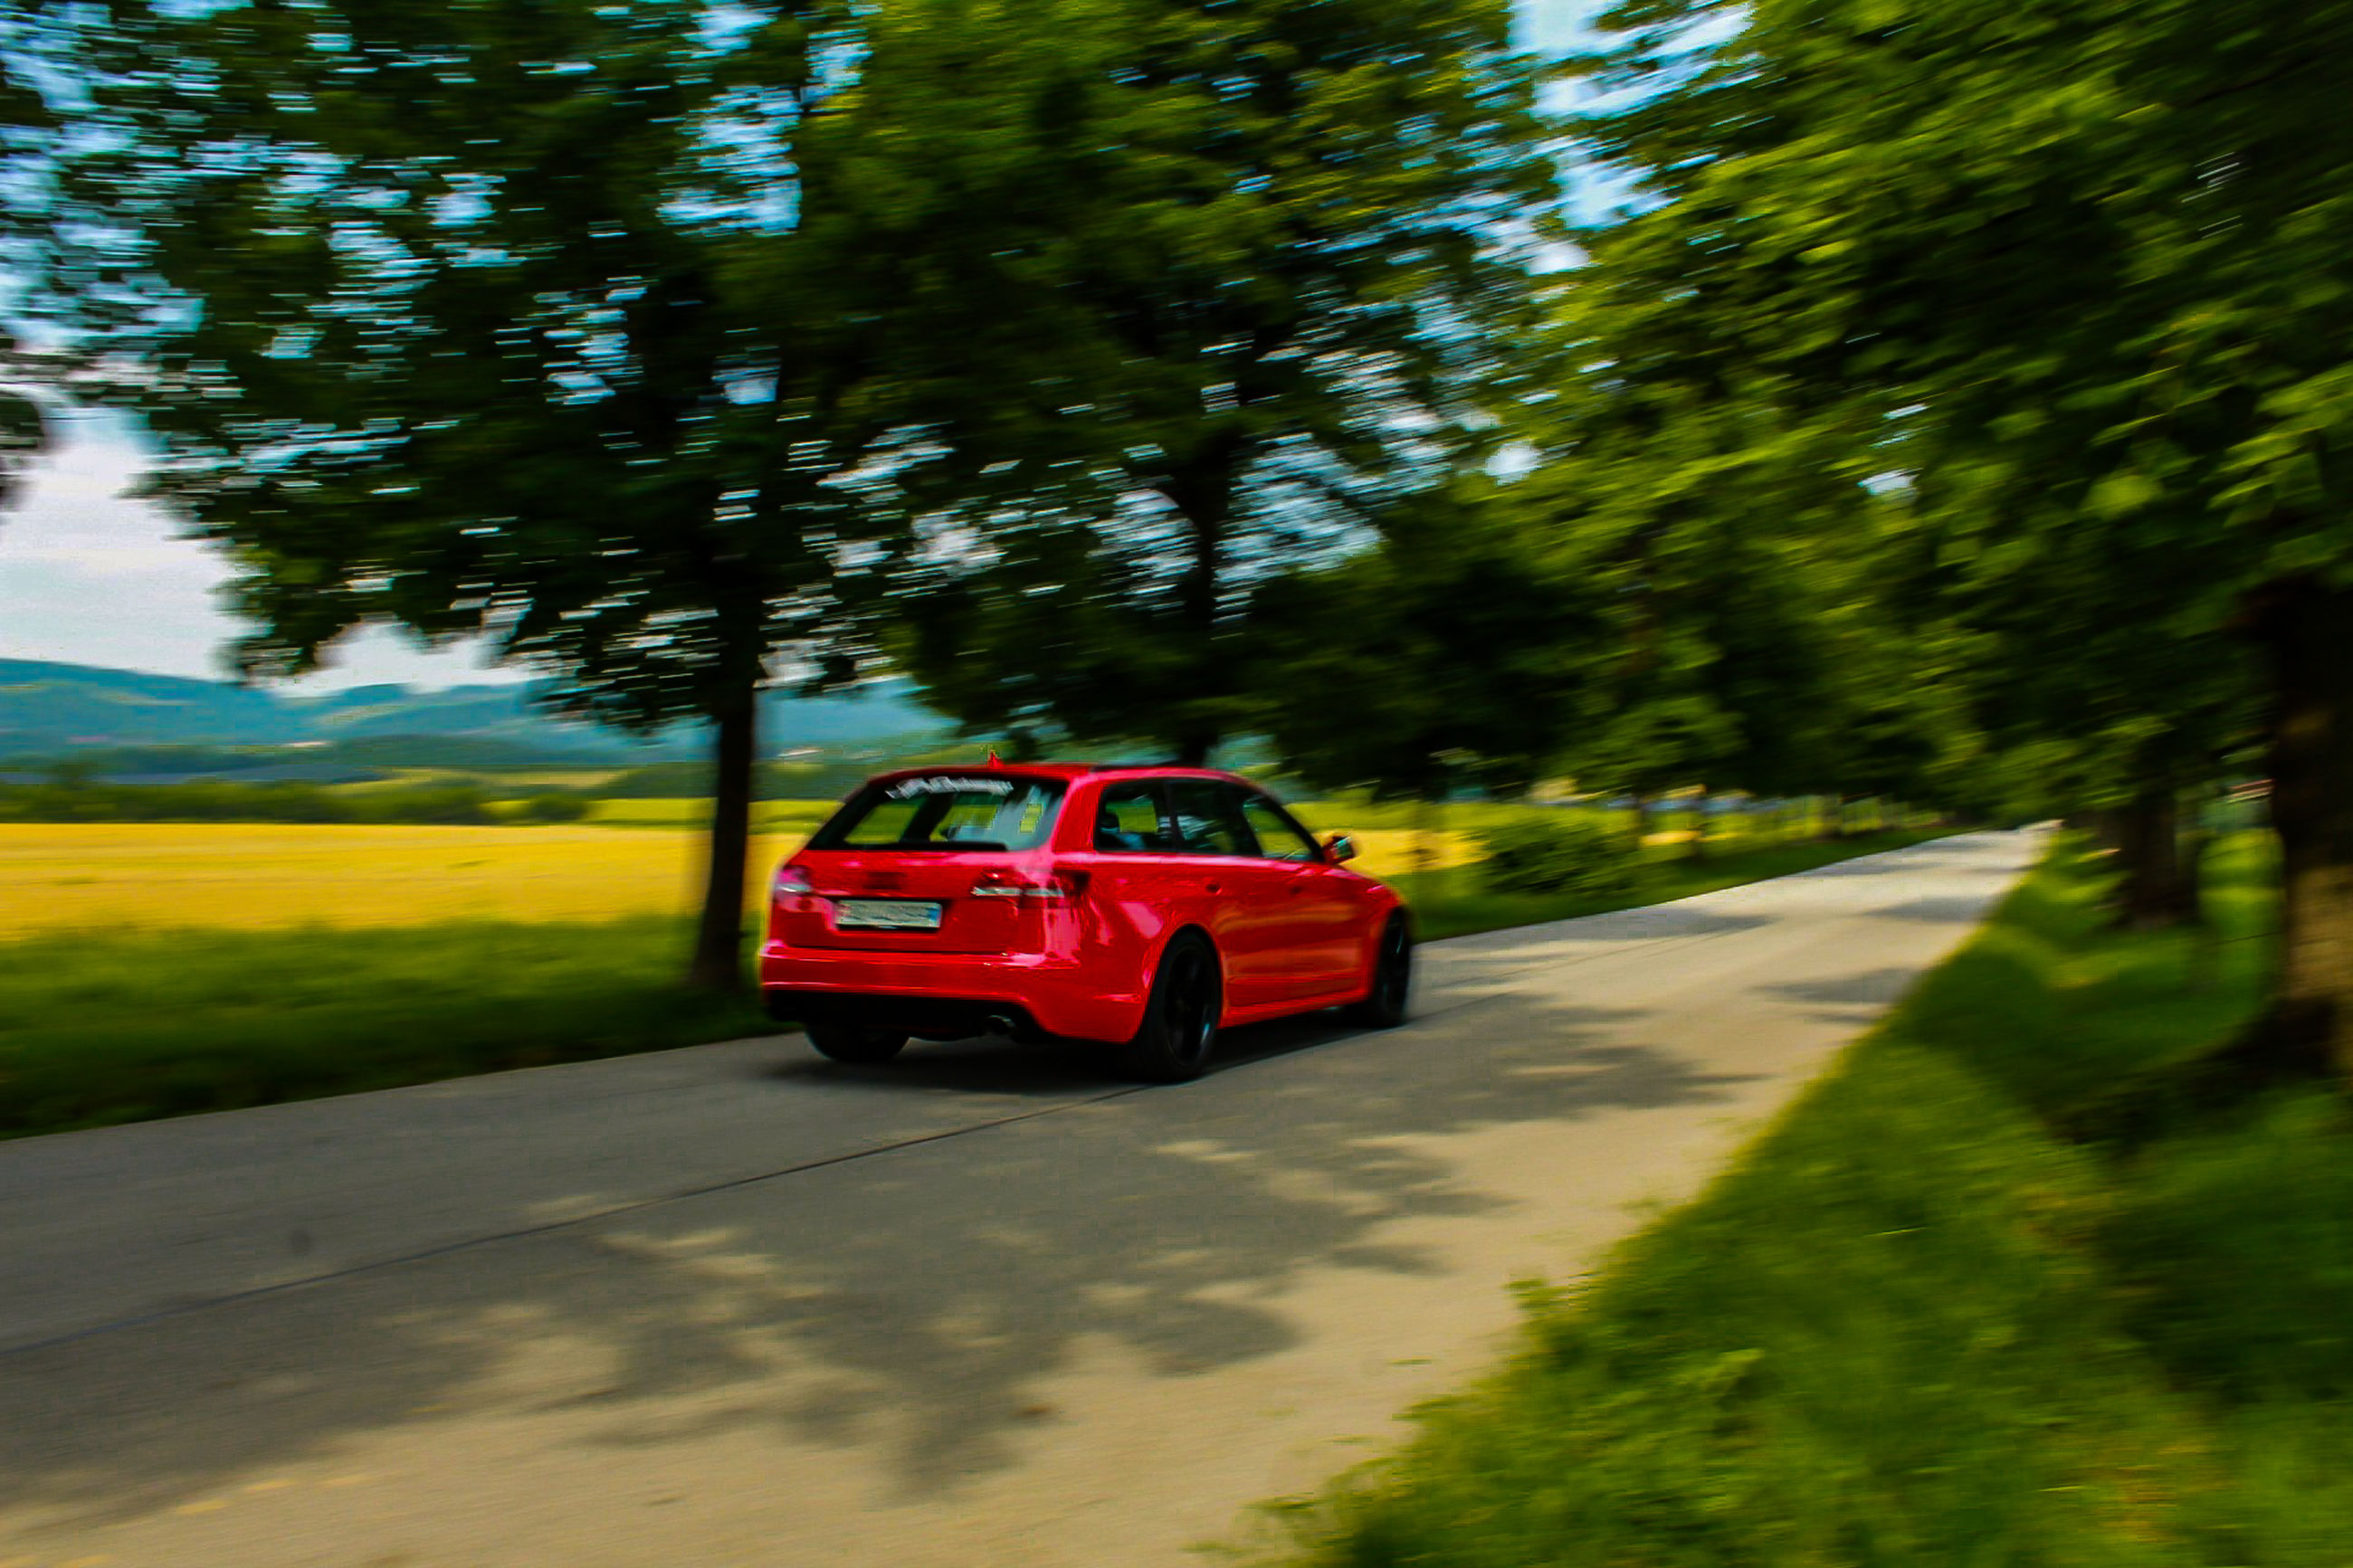 transportation, mode of transportation, tree, road, plant, land vehicle, motor vehicle, car, motion, nature, red, green color, blurred motion, no people, day, on the move, travel, city, sunlight, selective focus, outdoors, road trip